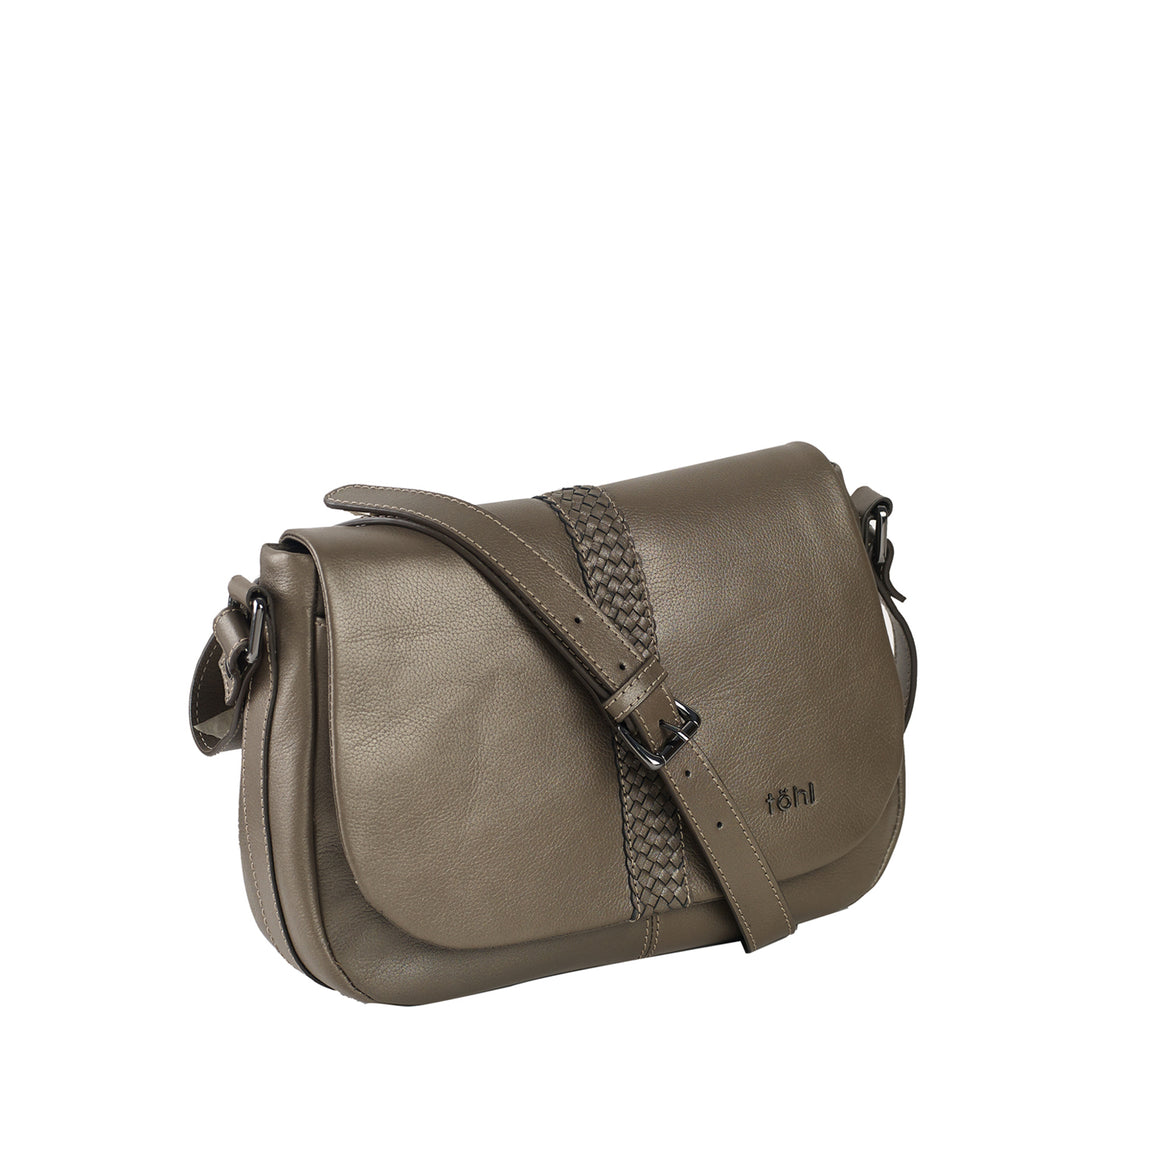 SG 0008 - TOHL CARA WOMEN'S SLING BAG - METALLIC COPPER